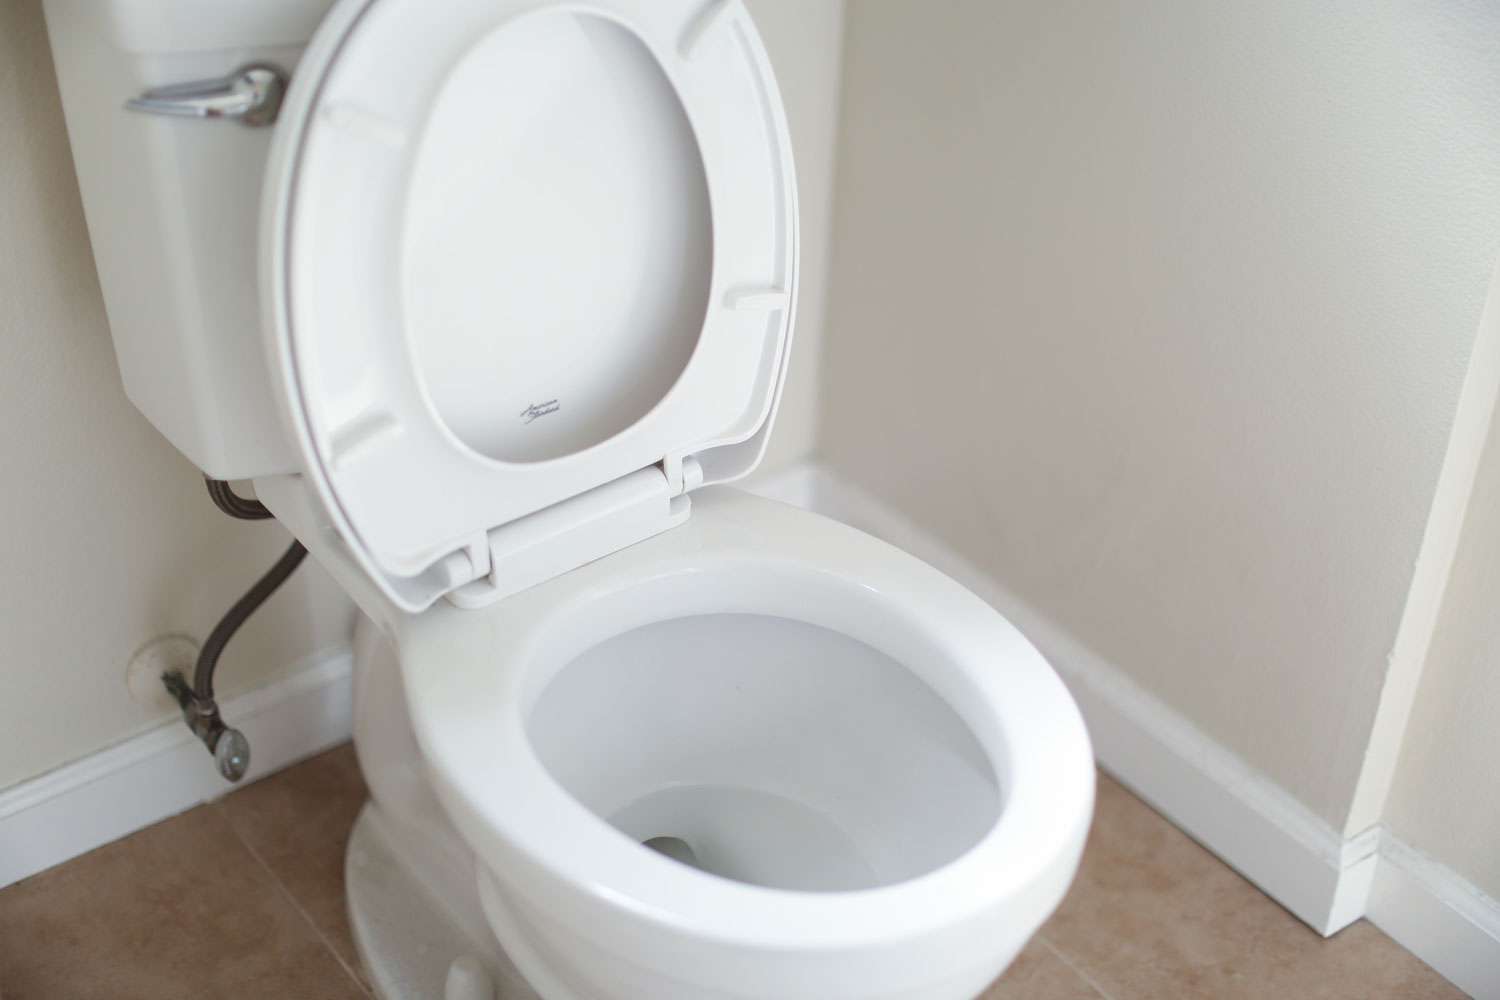 What to do if your toilet gets getting clogged?